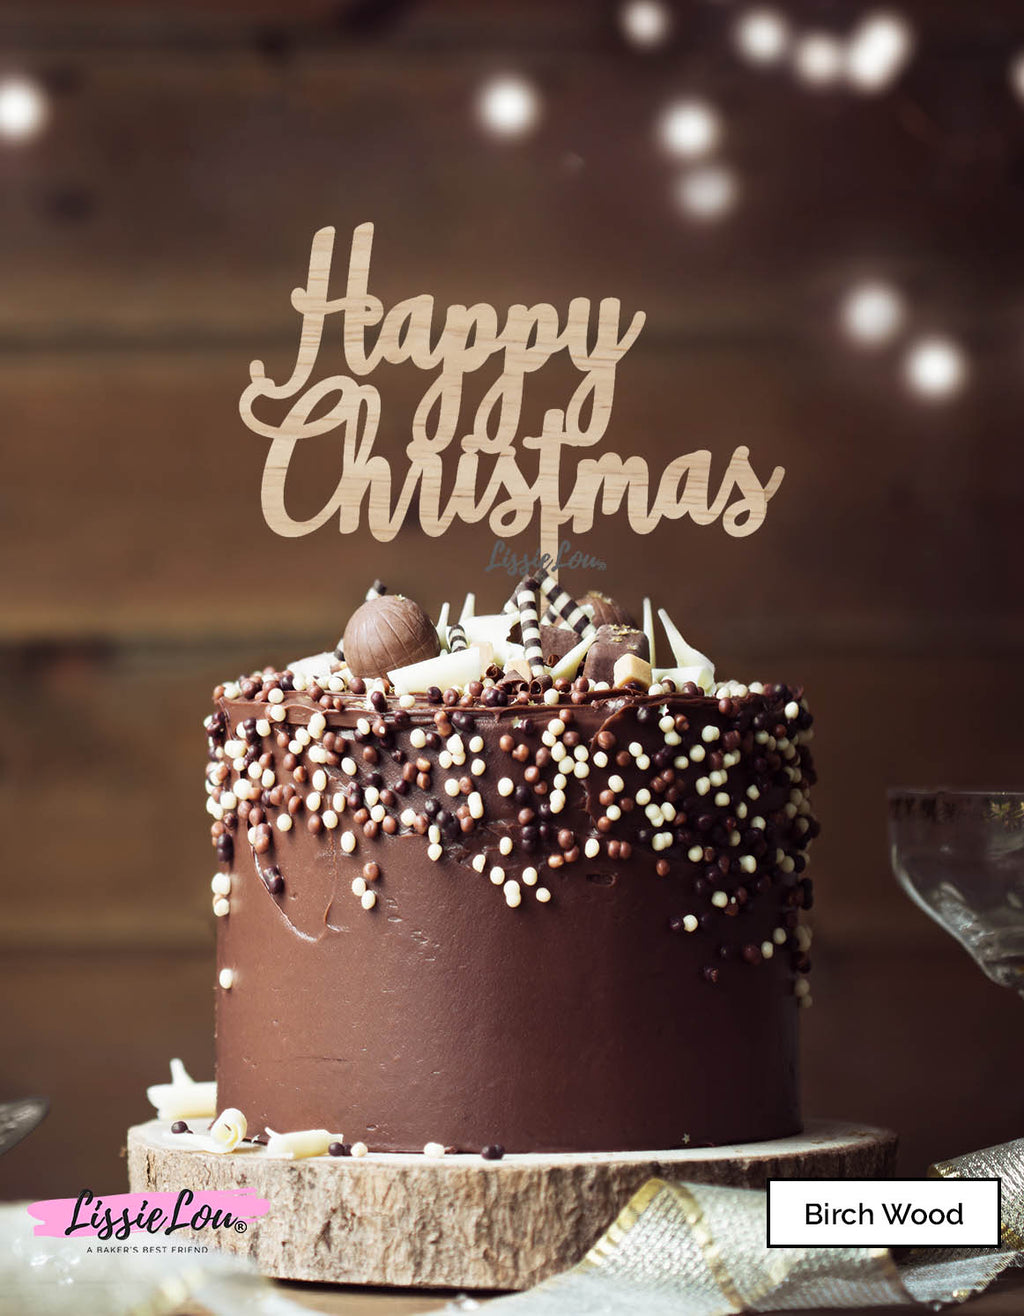 Happy Christmas Pretty Cake Topper Premium 3mm Birch Wood